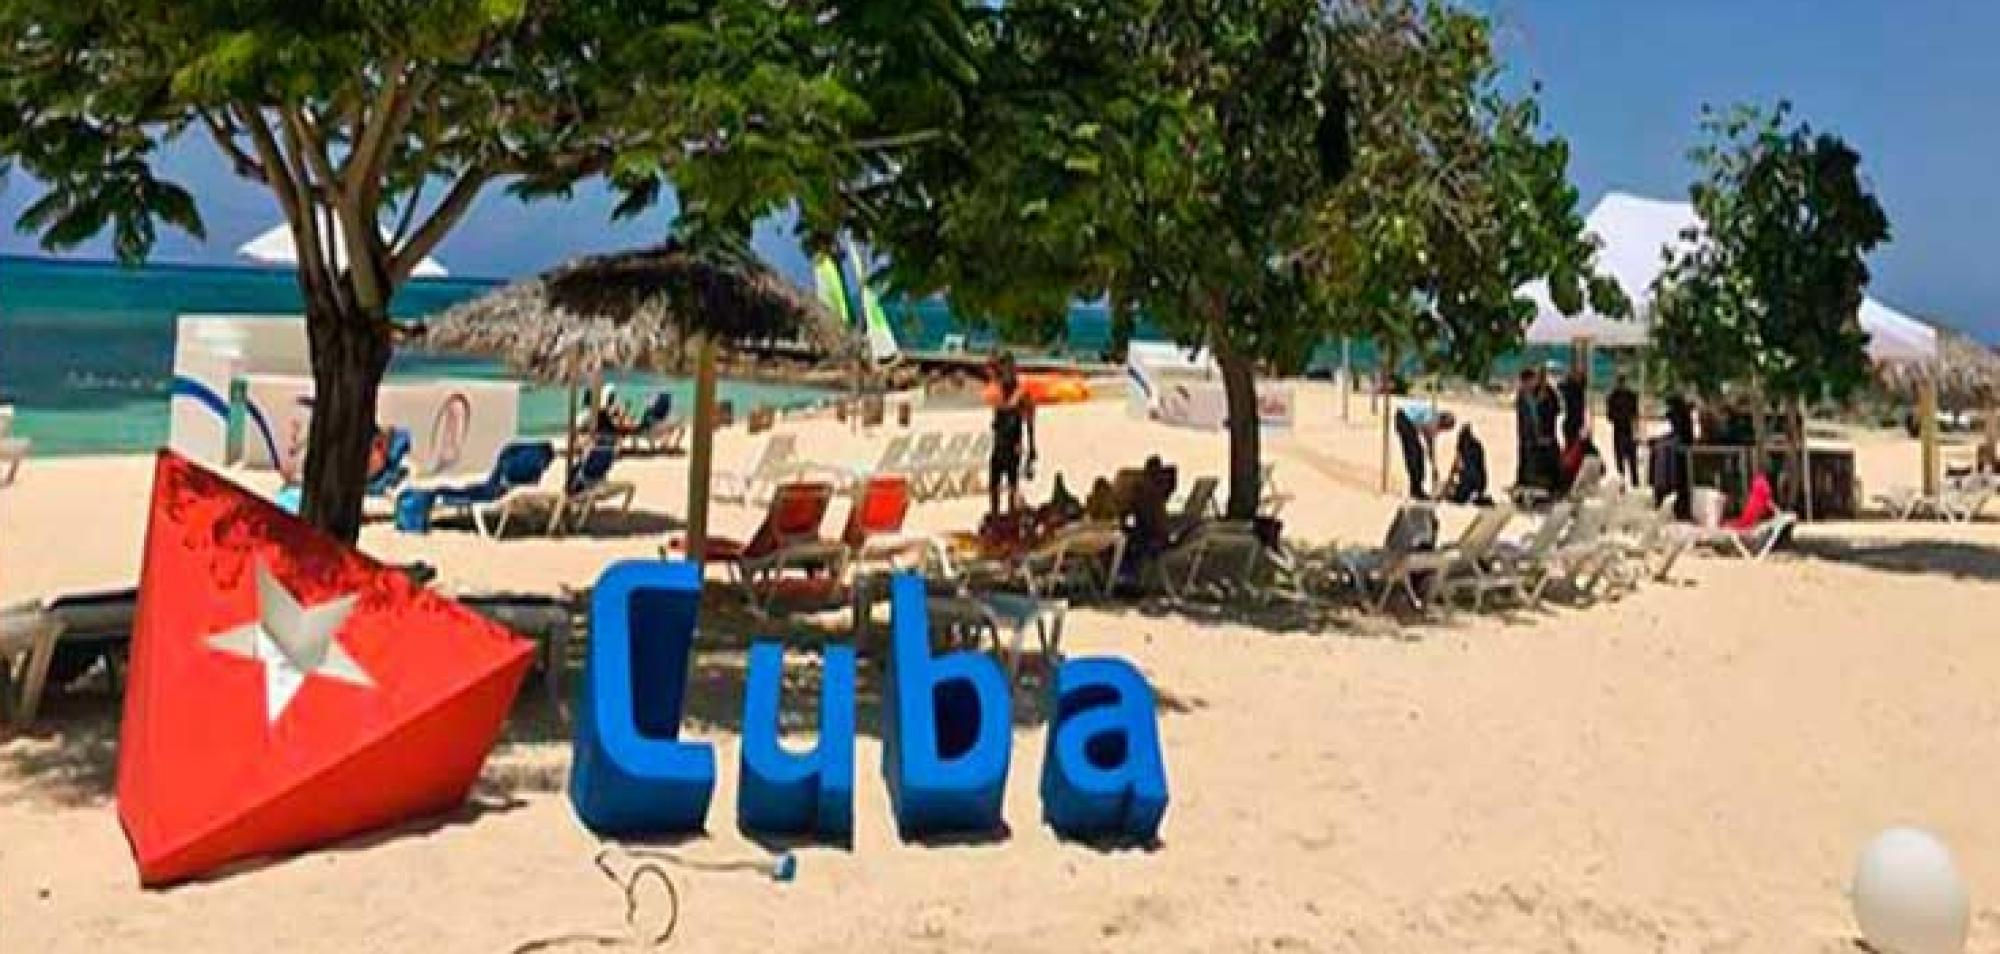 Cuba to Improve Information for Growing Tourism